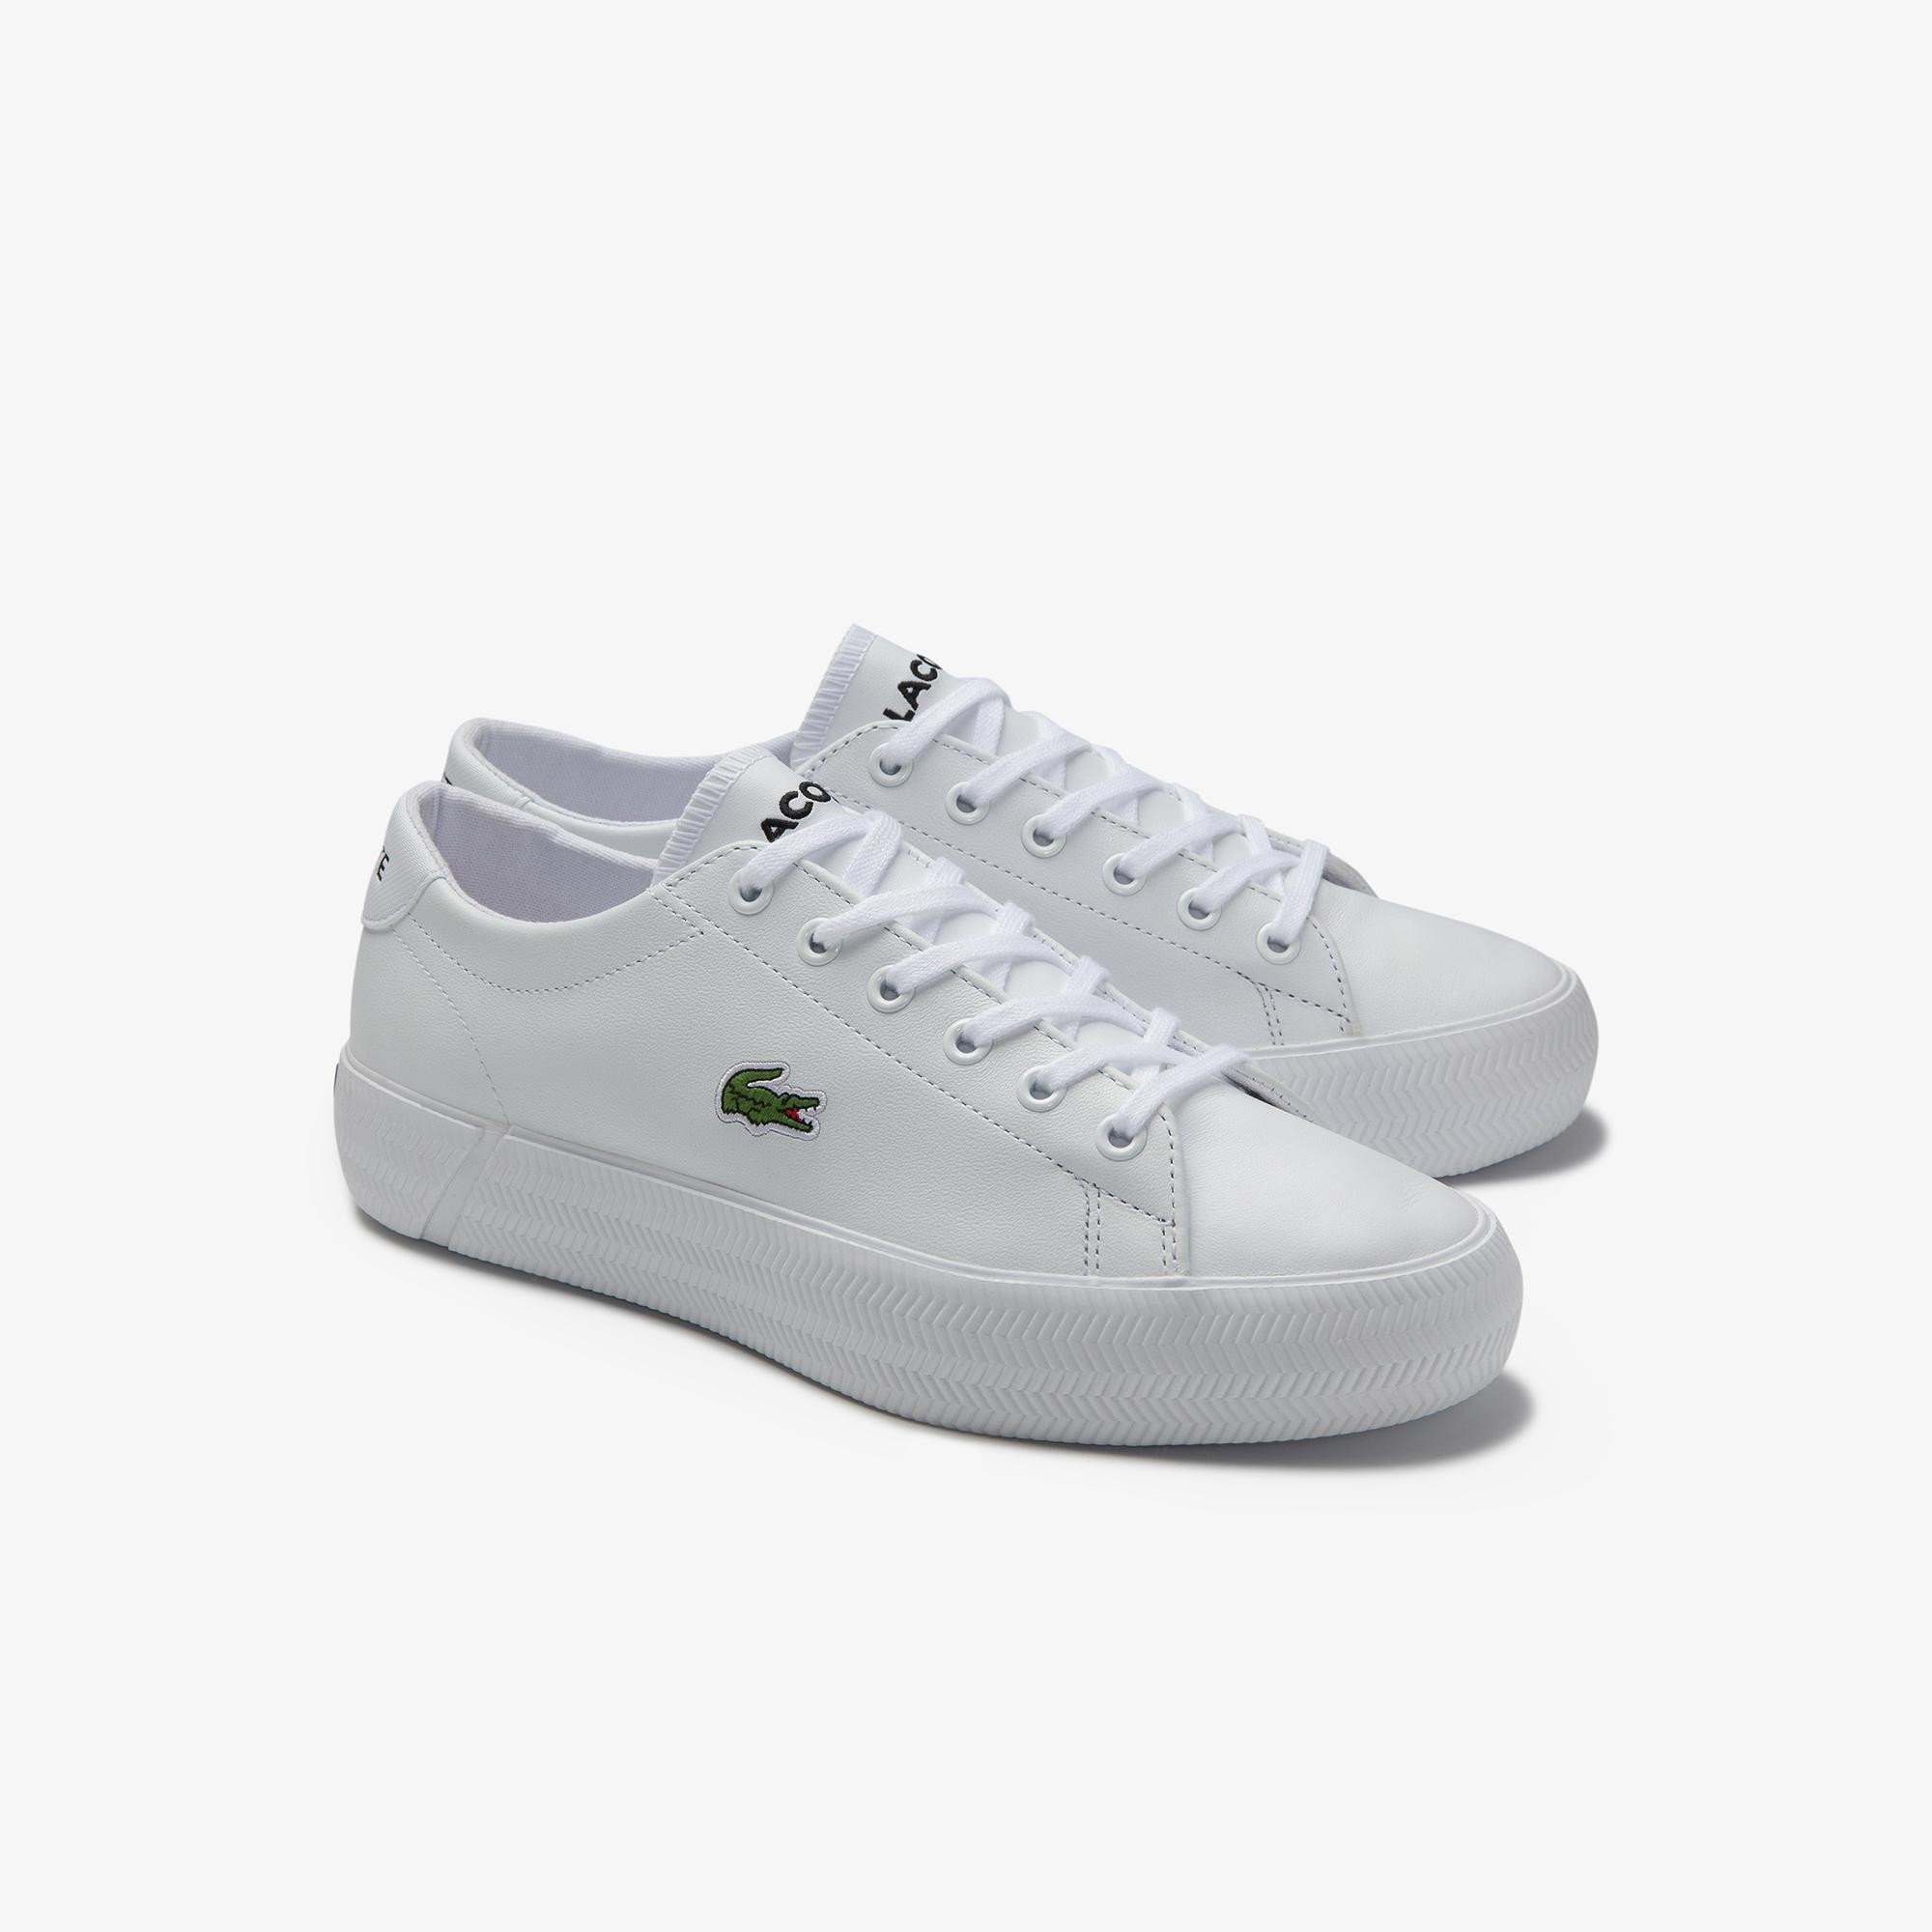 Lacoste Women's Shoes